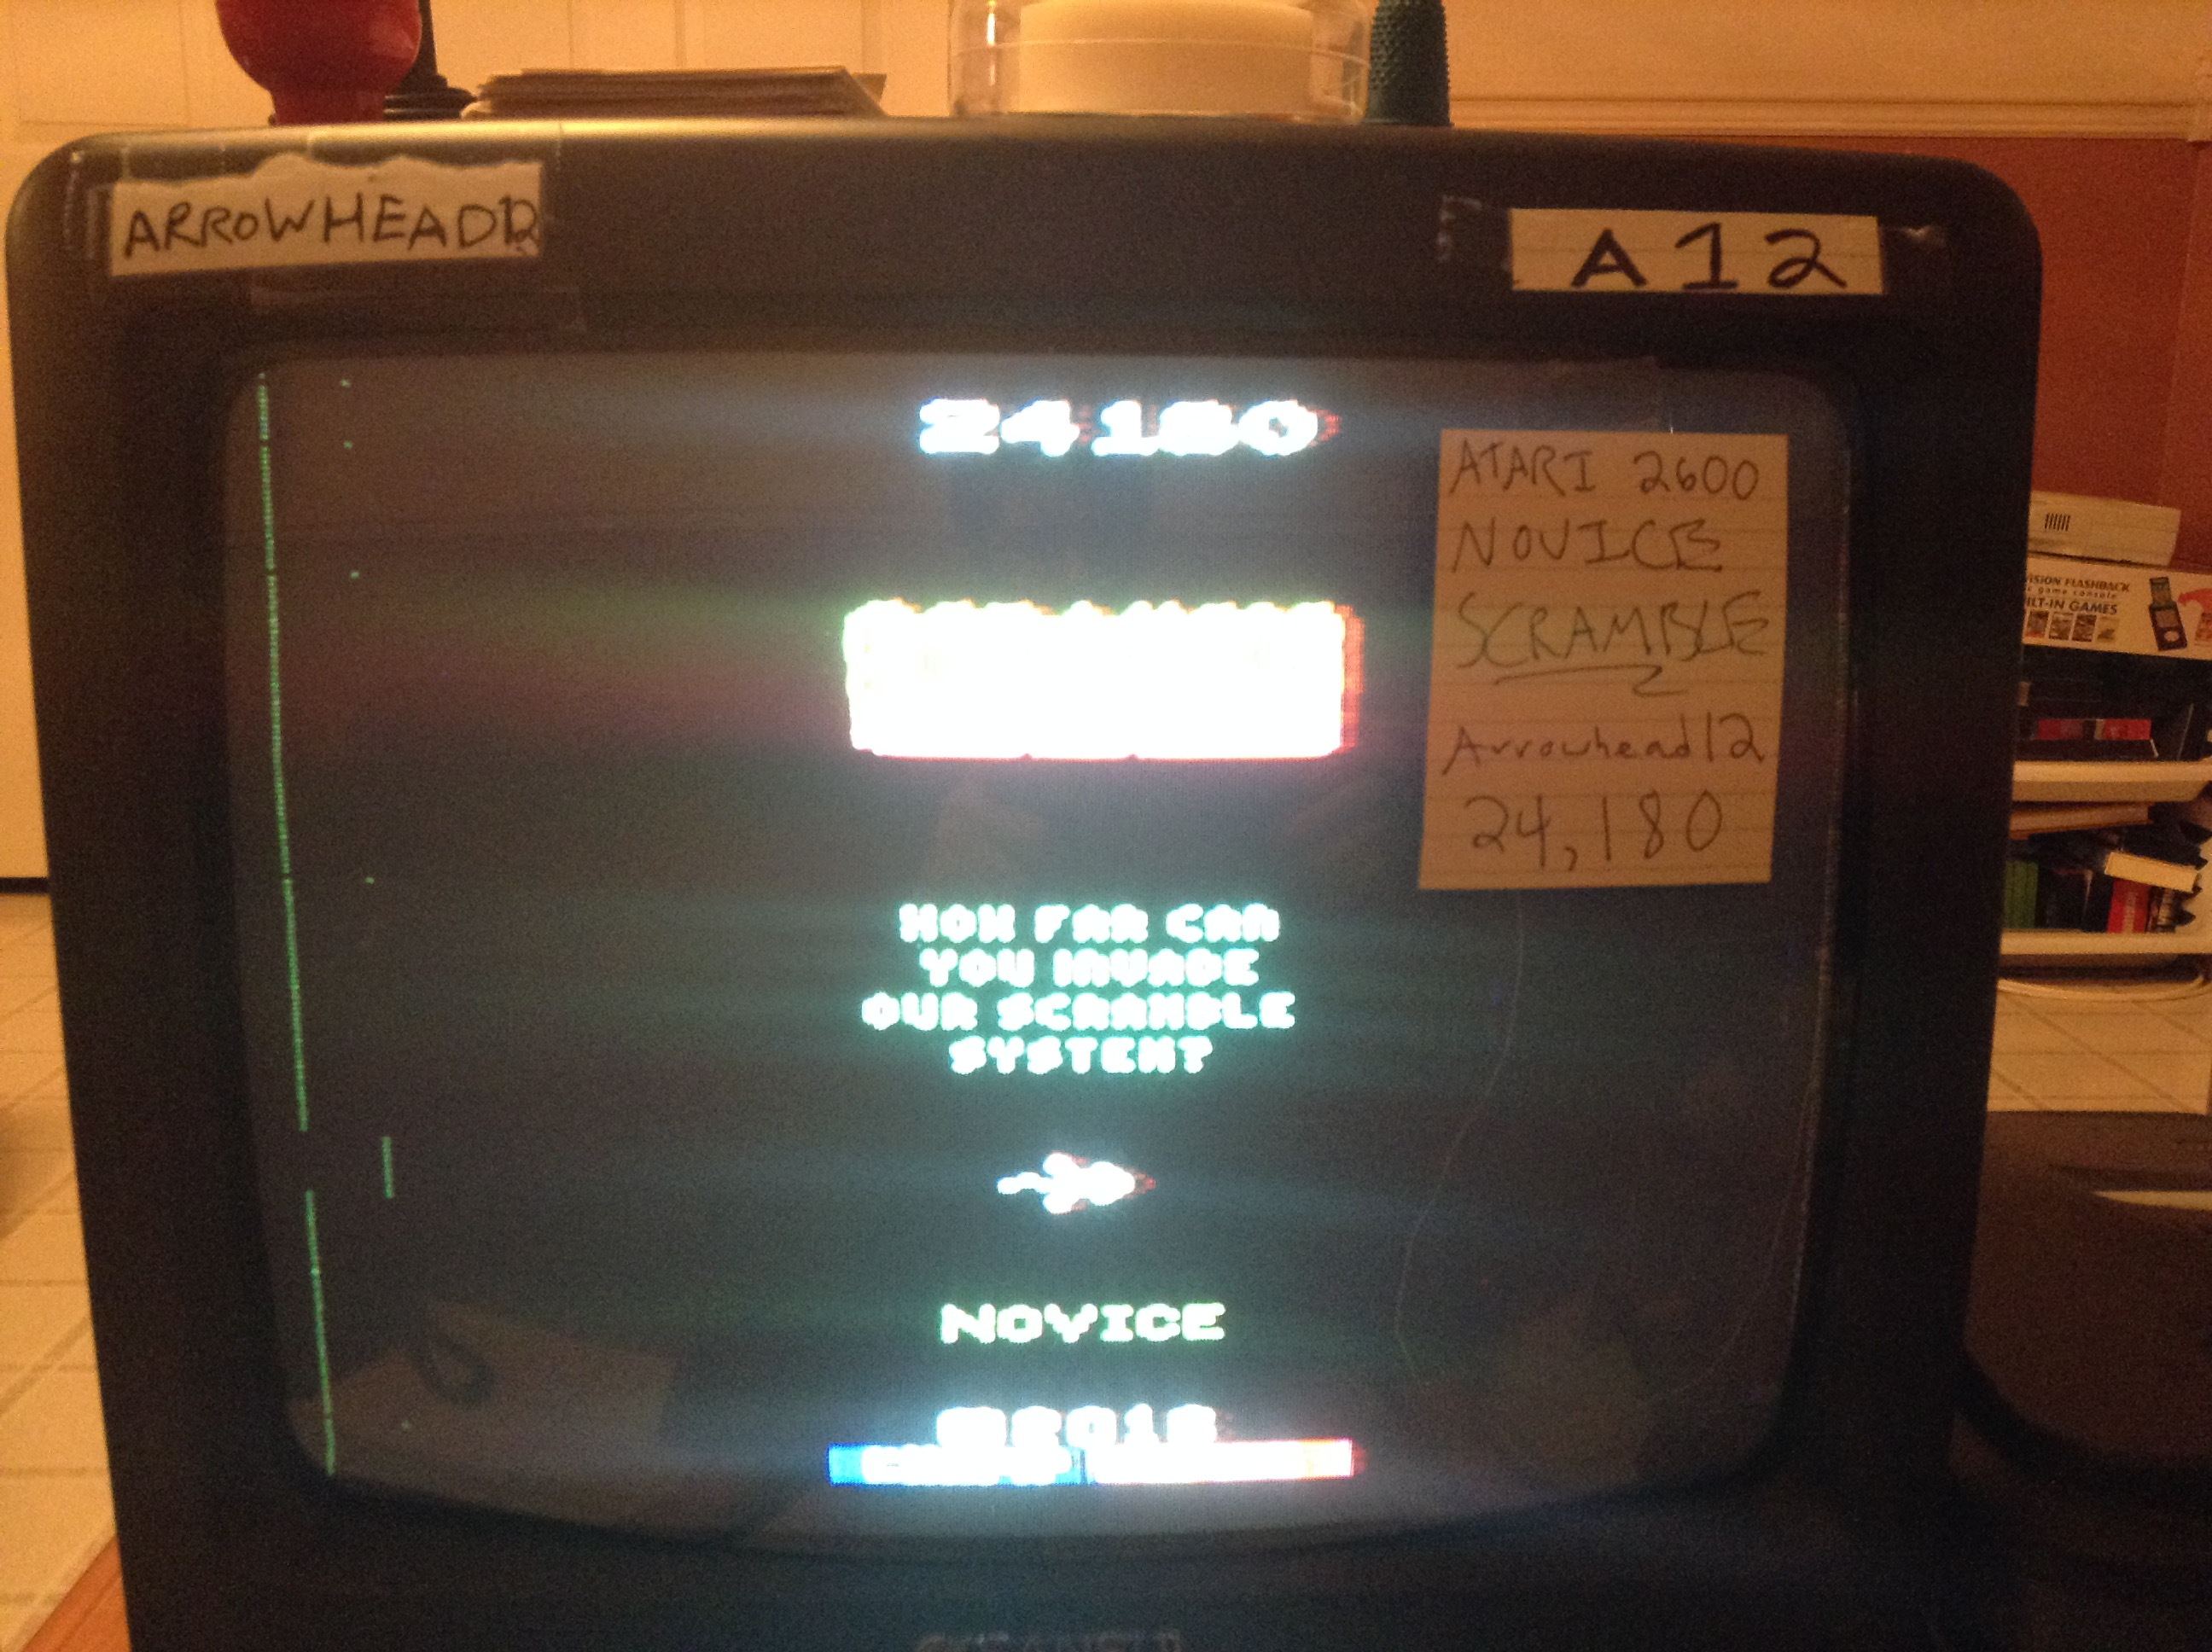 Arrowhead12: Scramble [Novice] (Atari 2600) 24,180 points on 2019-01-01 00:40:26